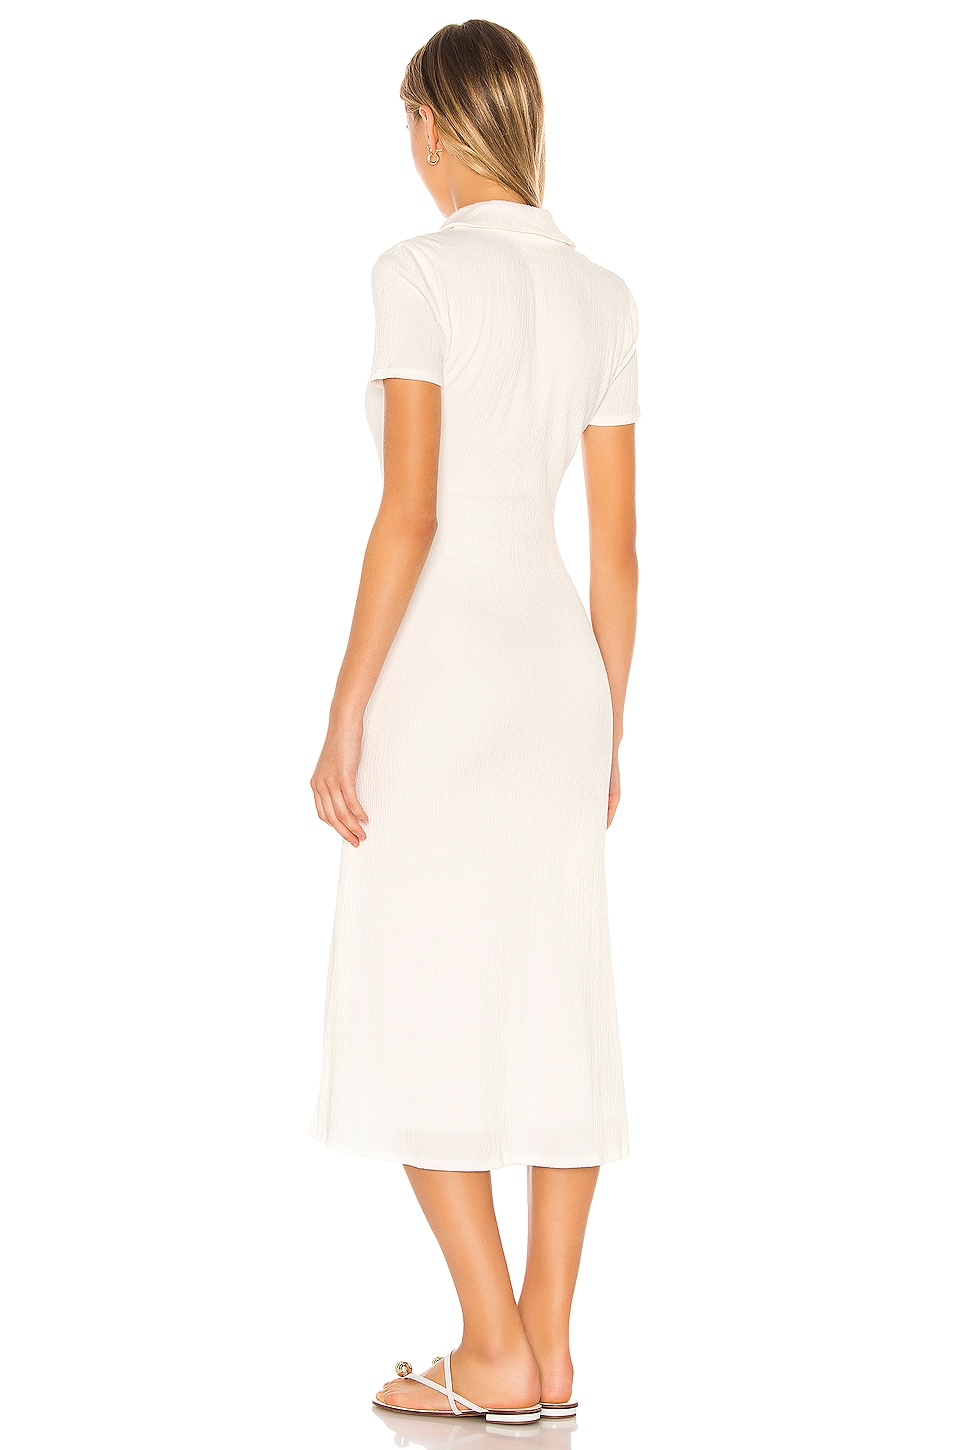 Polly Midi Dress, view 3, click to view large image.